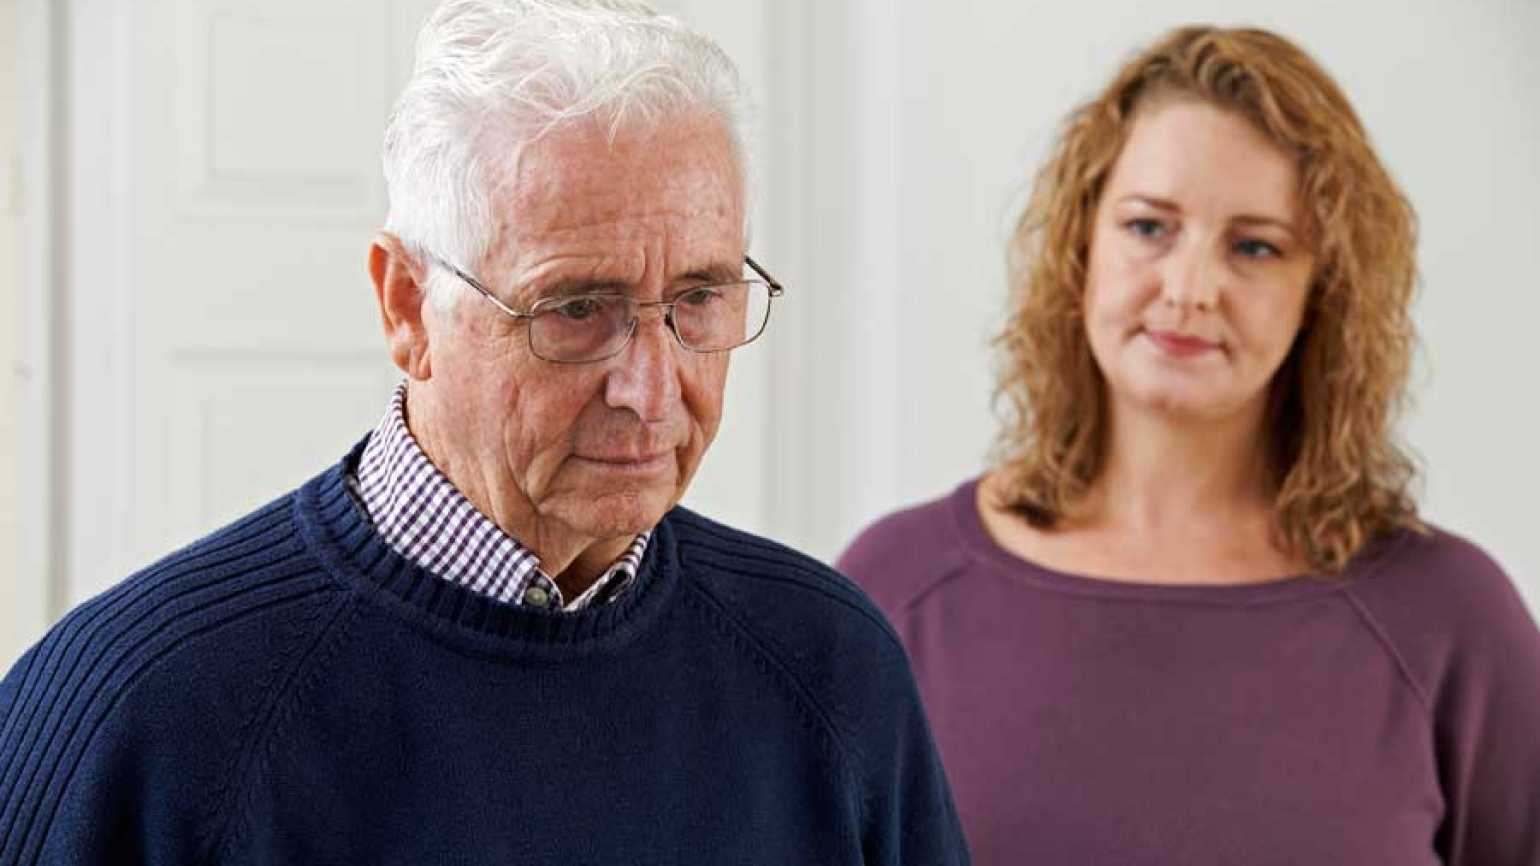 The Unsung Heroes: Taking Care of the Caregiver